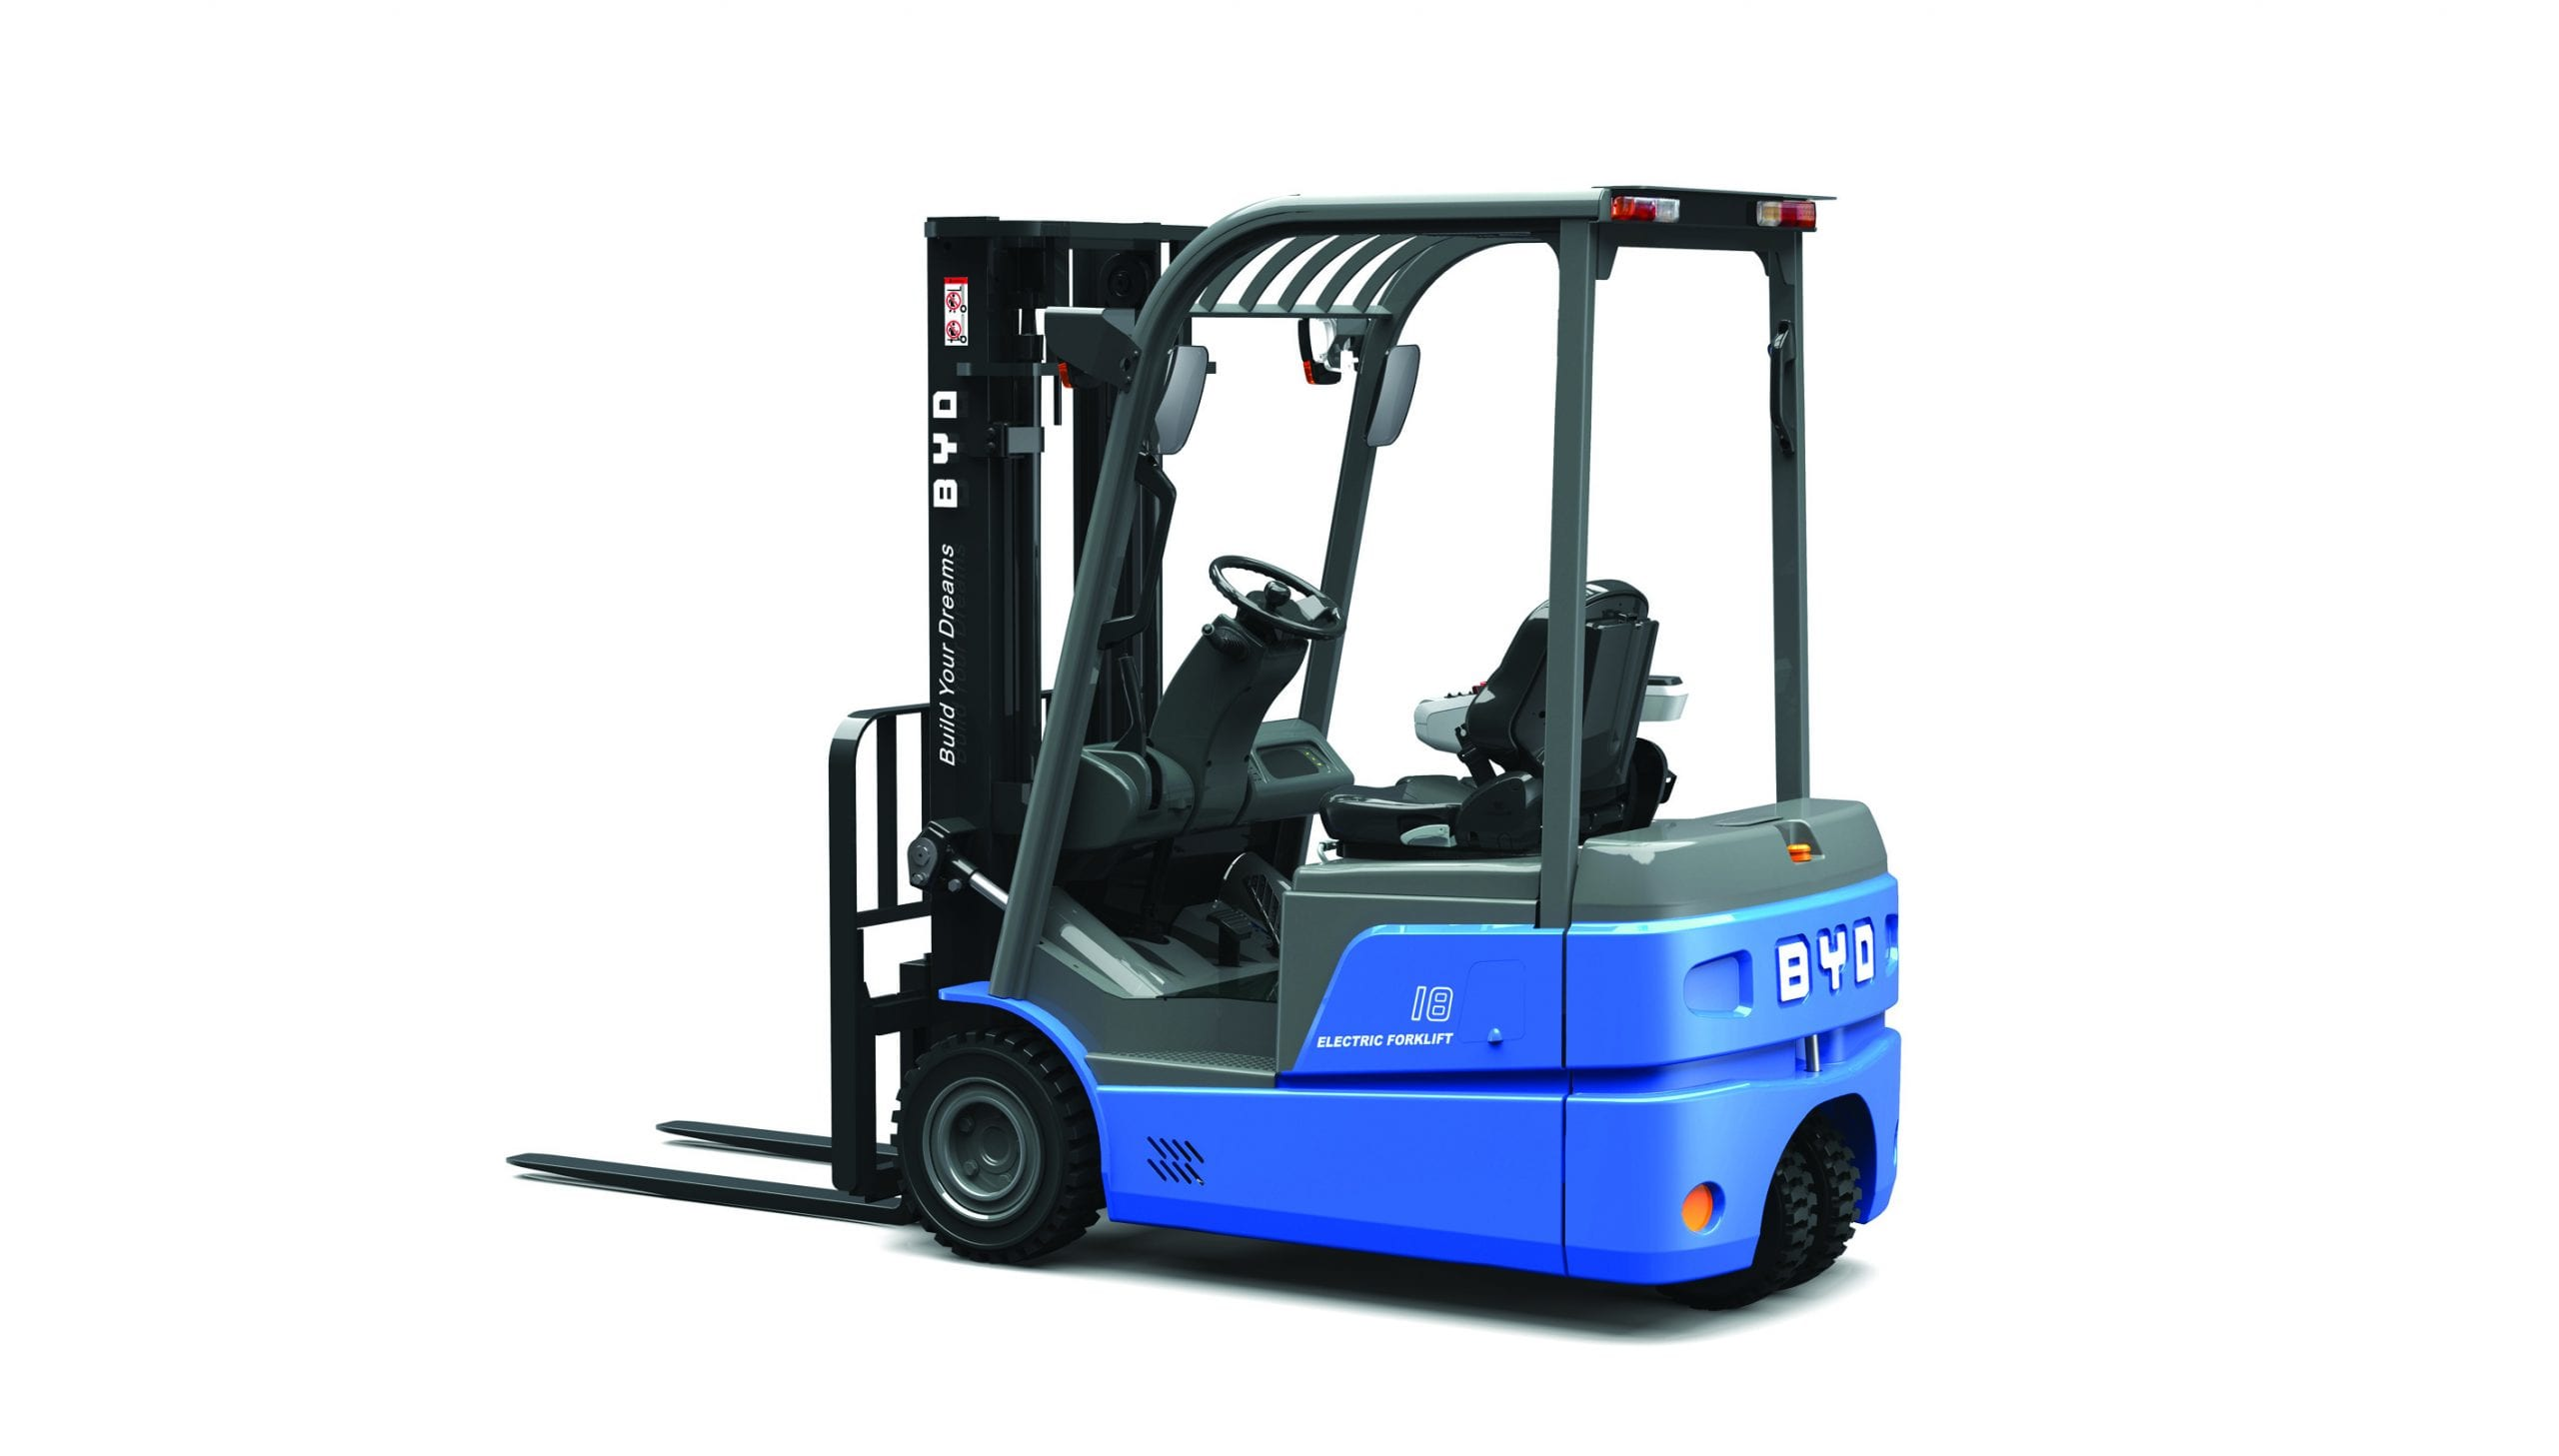 Lithium-Ion Forklifts for Sale in Northampton, Nottingham, Derby, Warwick, Leicester, Birmingham and across East Midlands, and West Midlands.